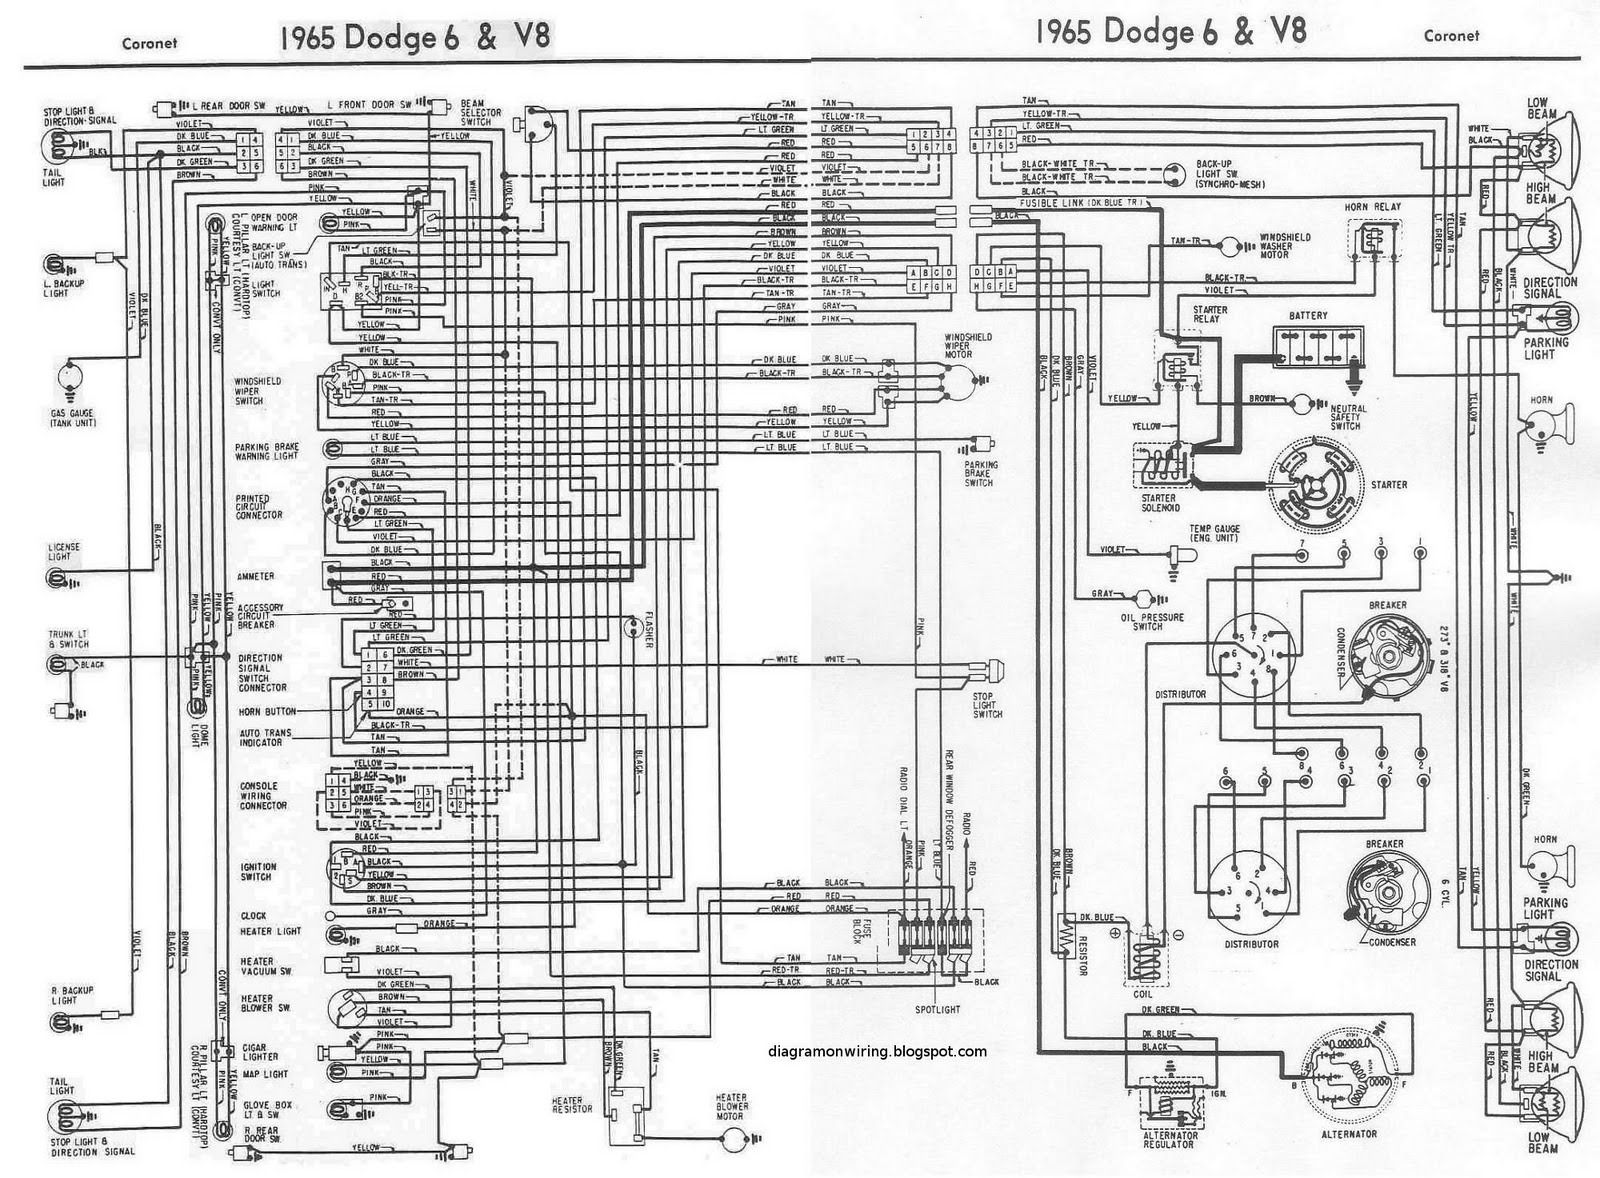 66 Mopar Wiper Wiring Diagram on 003 impala starter